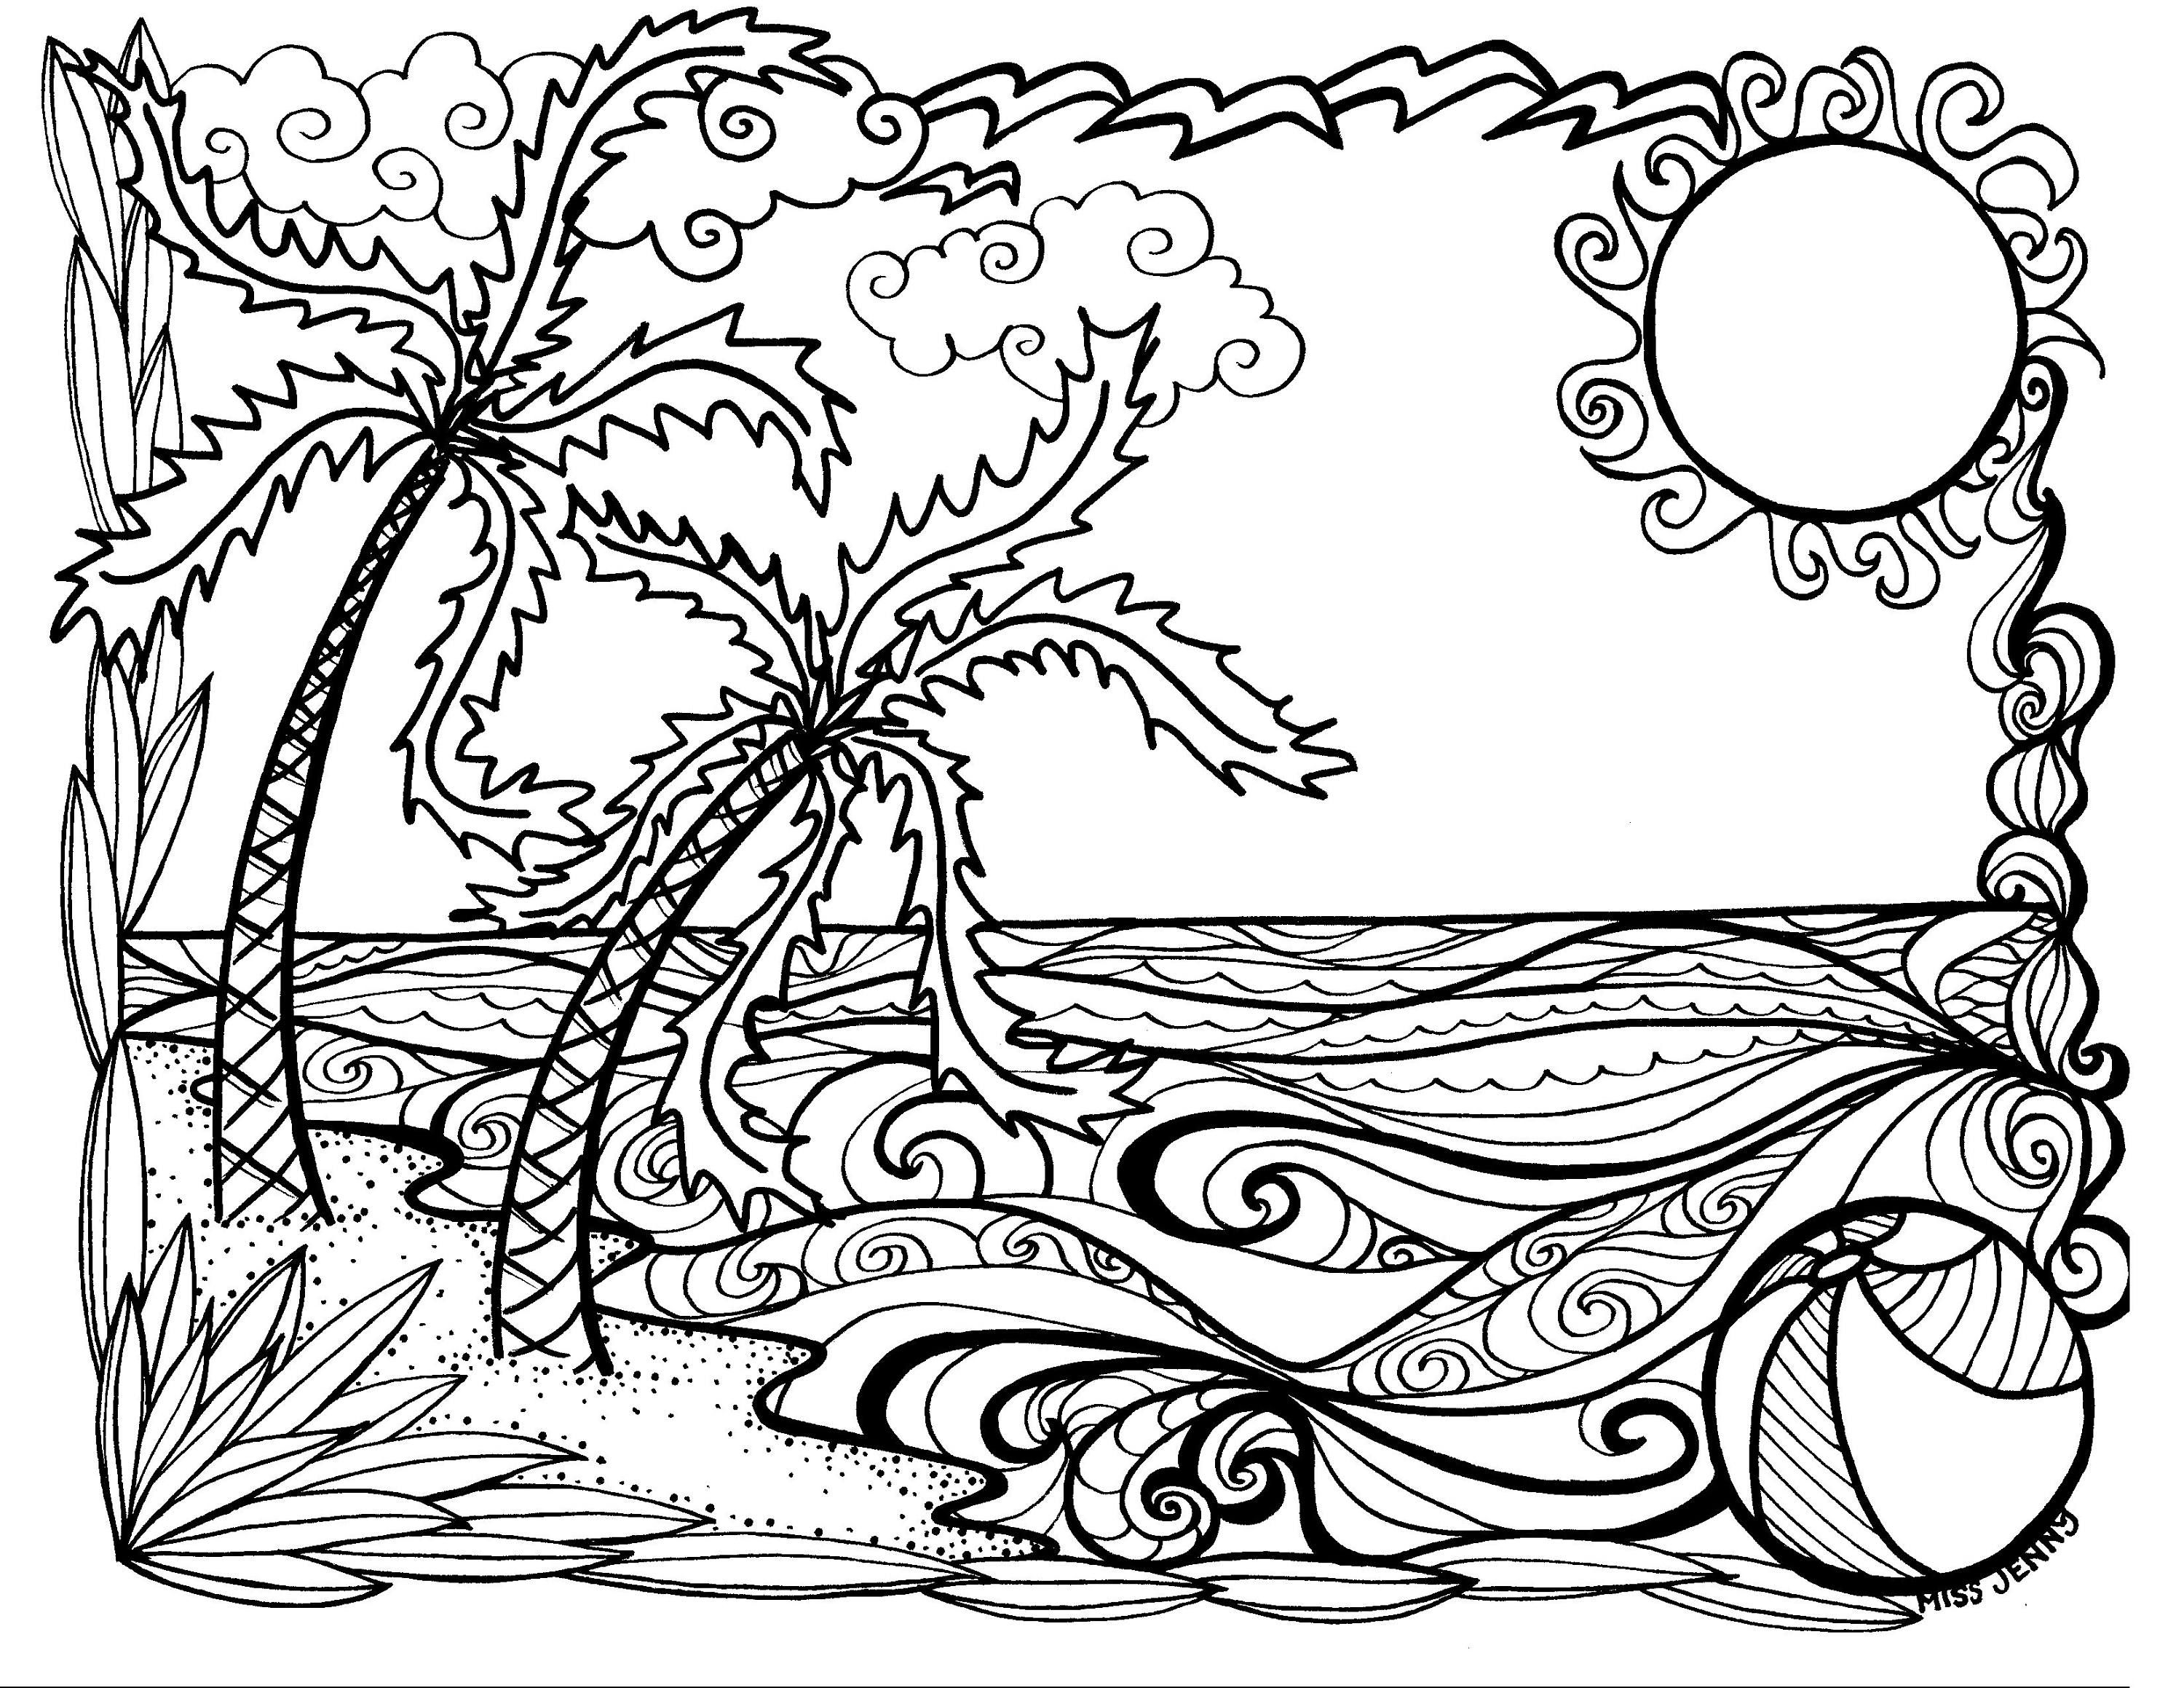 Summer Fun At The Beach Coloring Page By Missjennydesignsus On Etsy